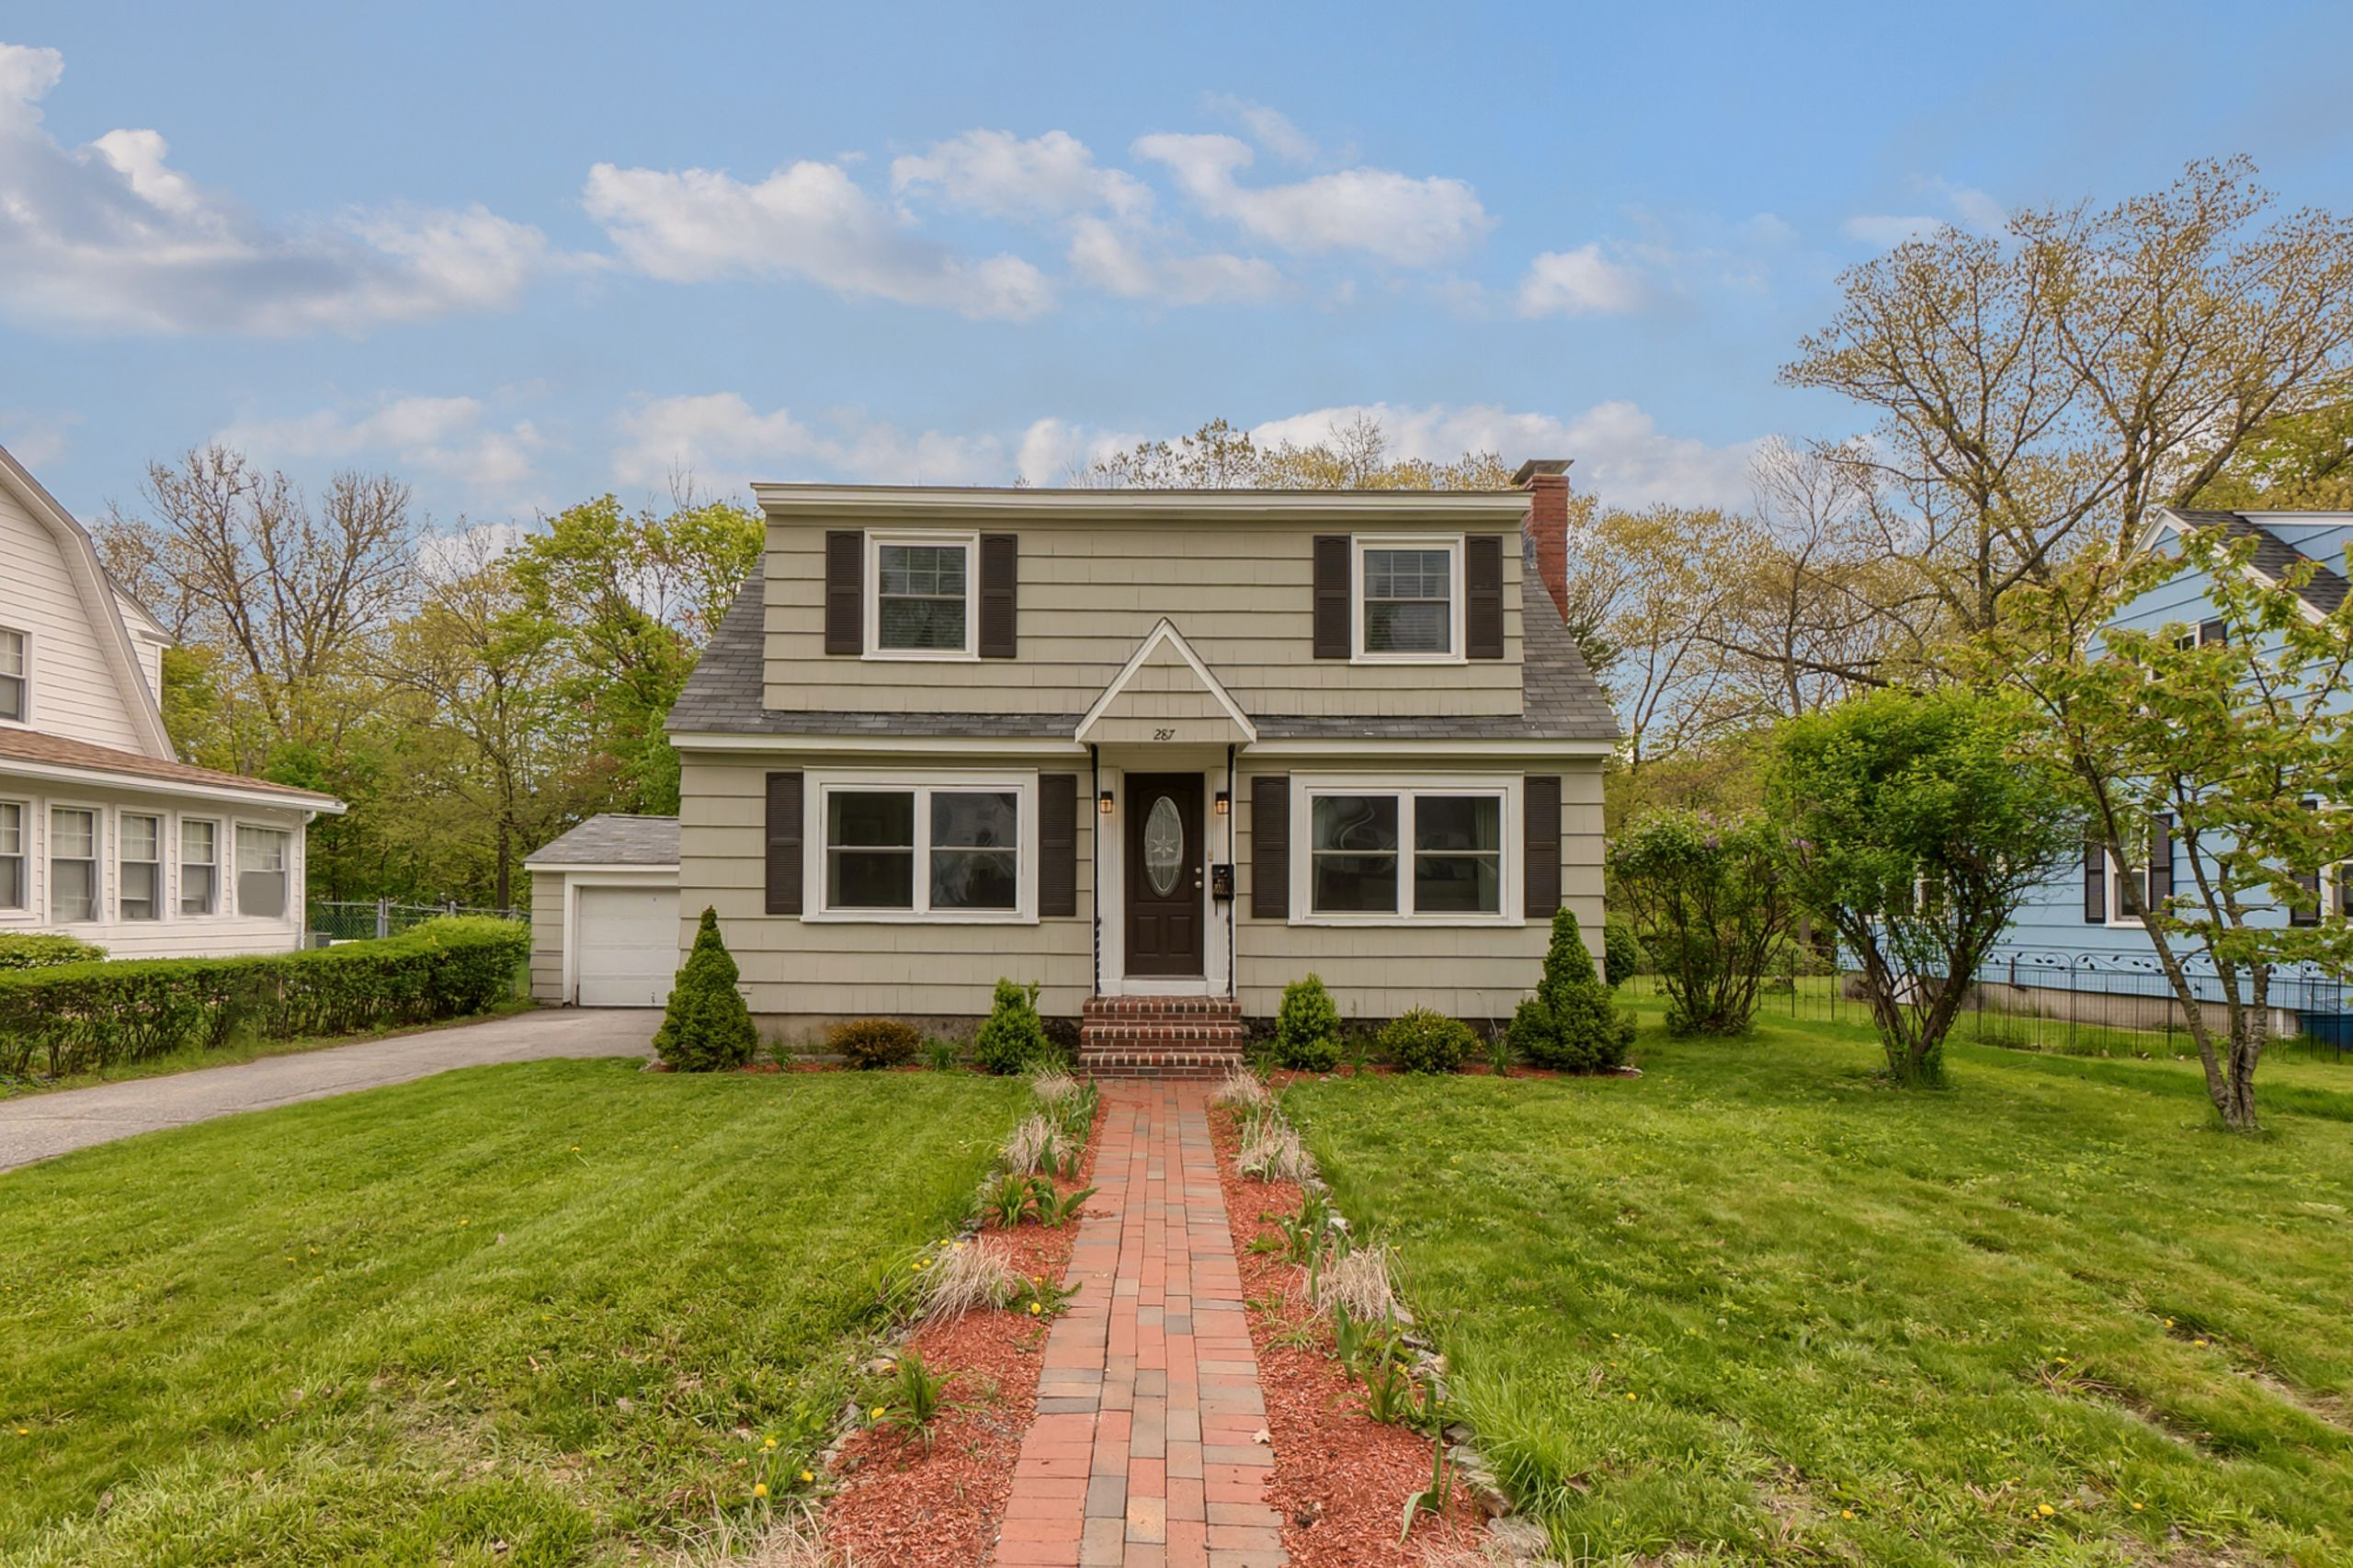 SOLD - 287 N MAIN STREET ANDOVER MA 01810